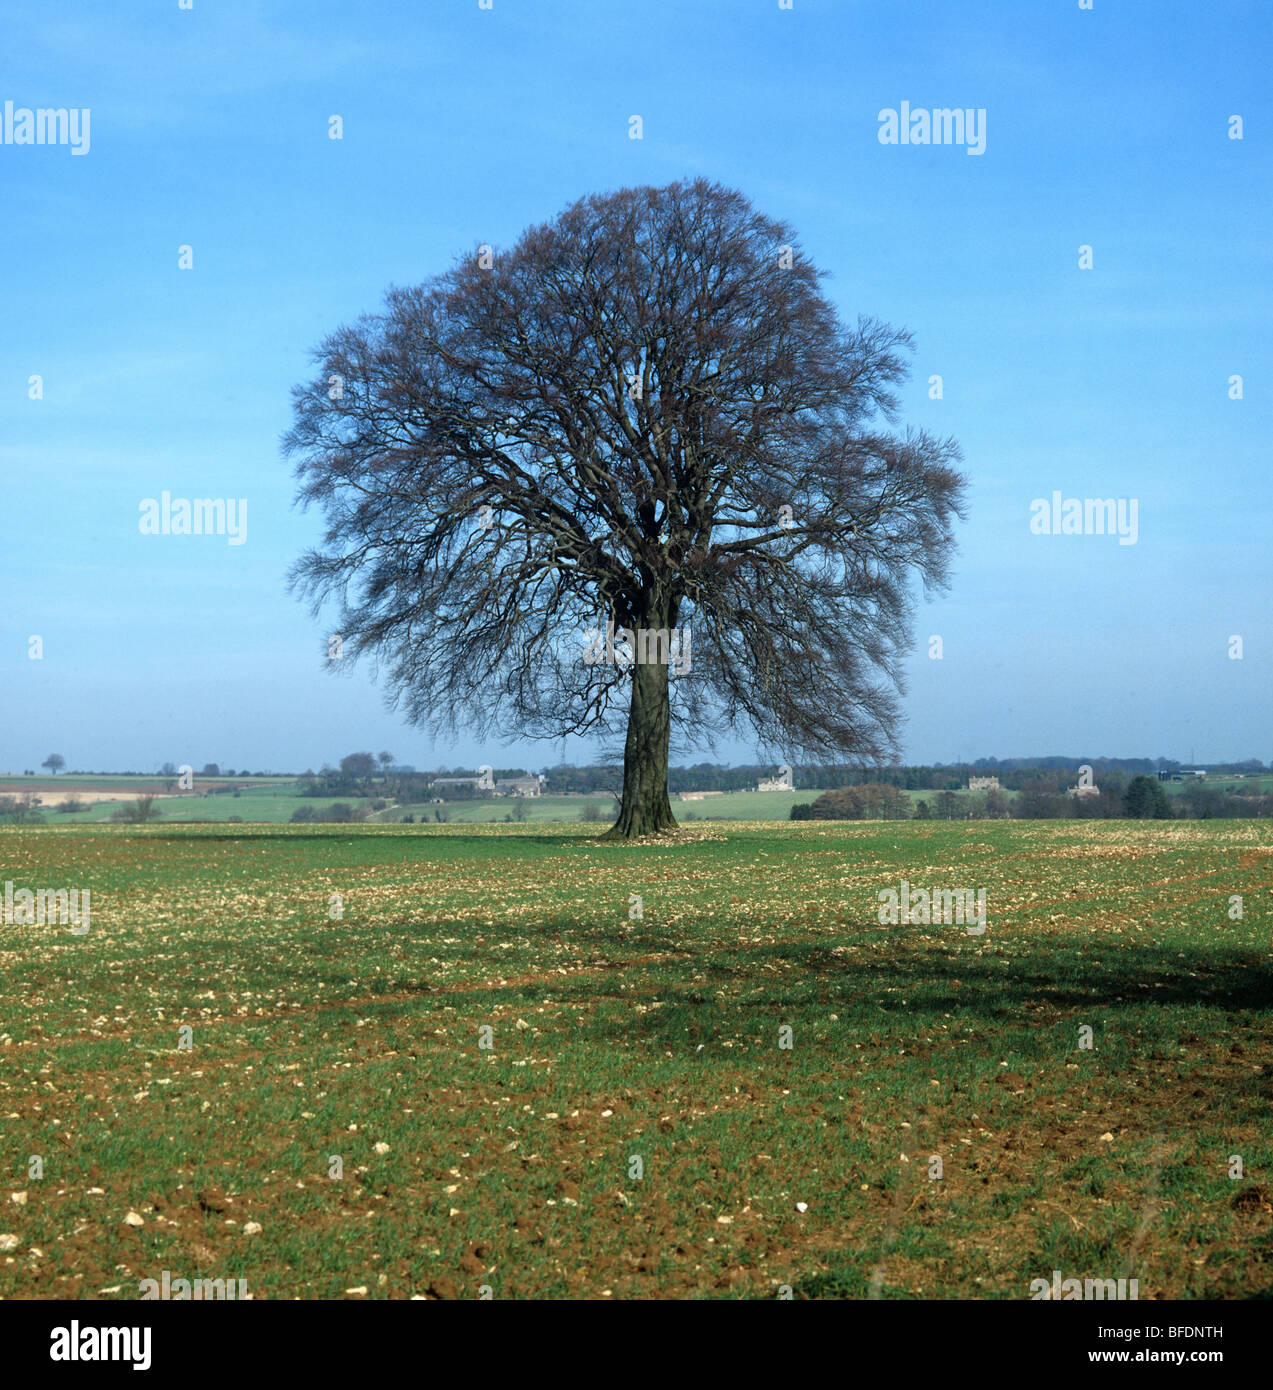 Single leafless beech (Fagus sylvatica) tree in a field of young cereals on a fine late winter day - Stock Image